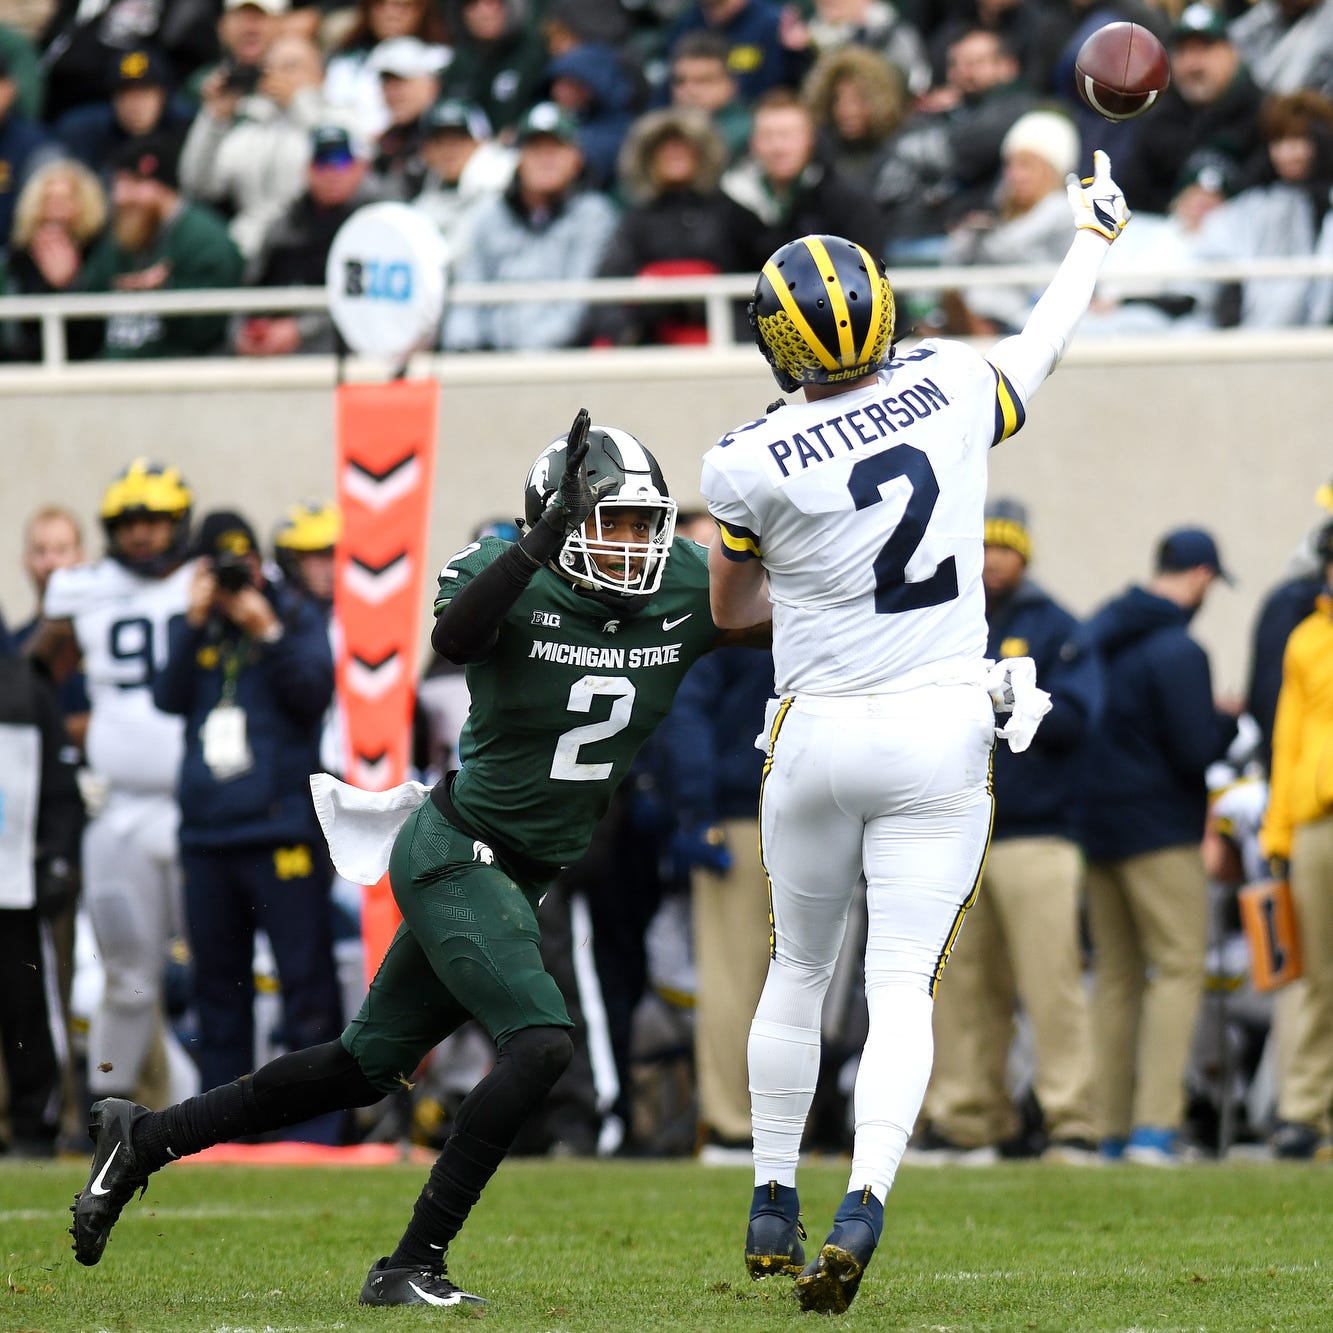 Turning point, unsung hero and more from Michigan State's loss to Michigan